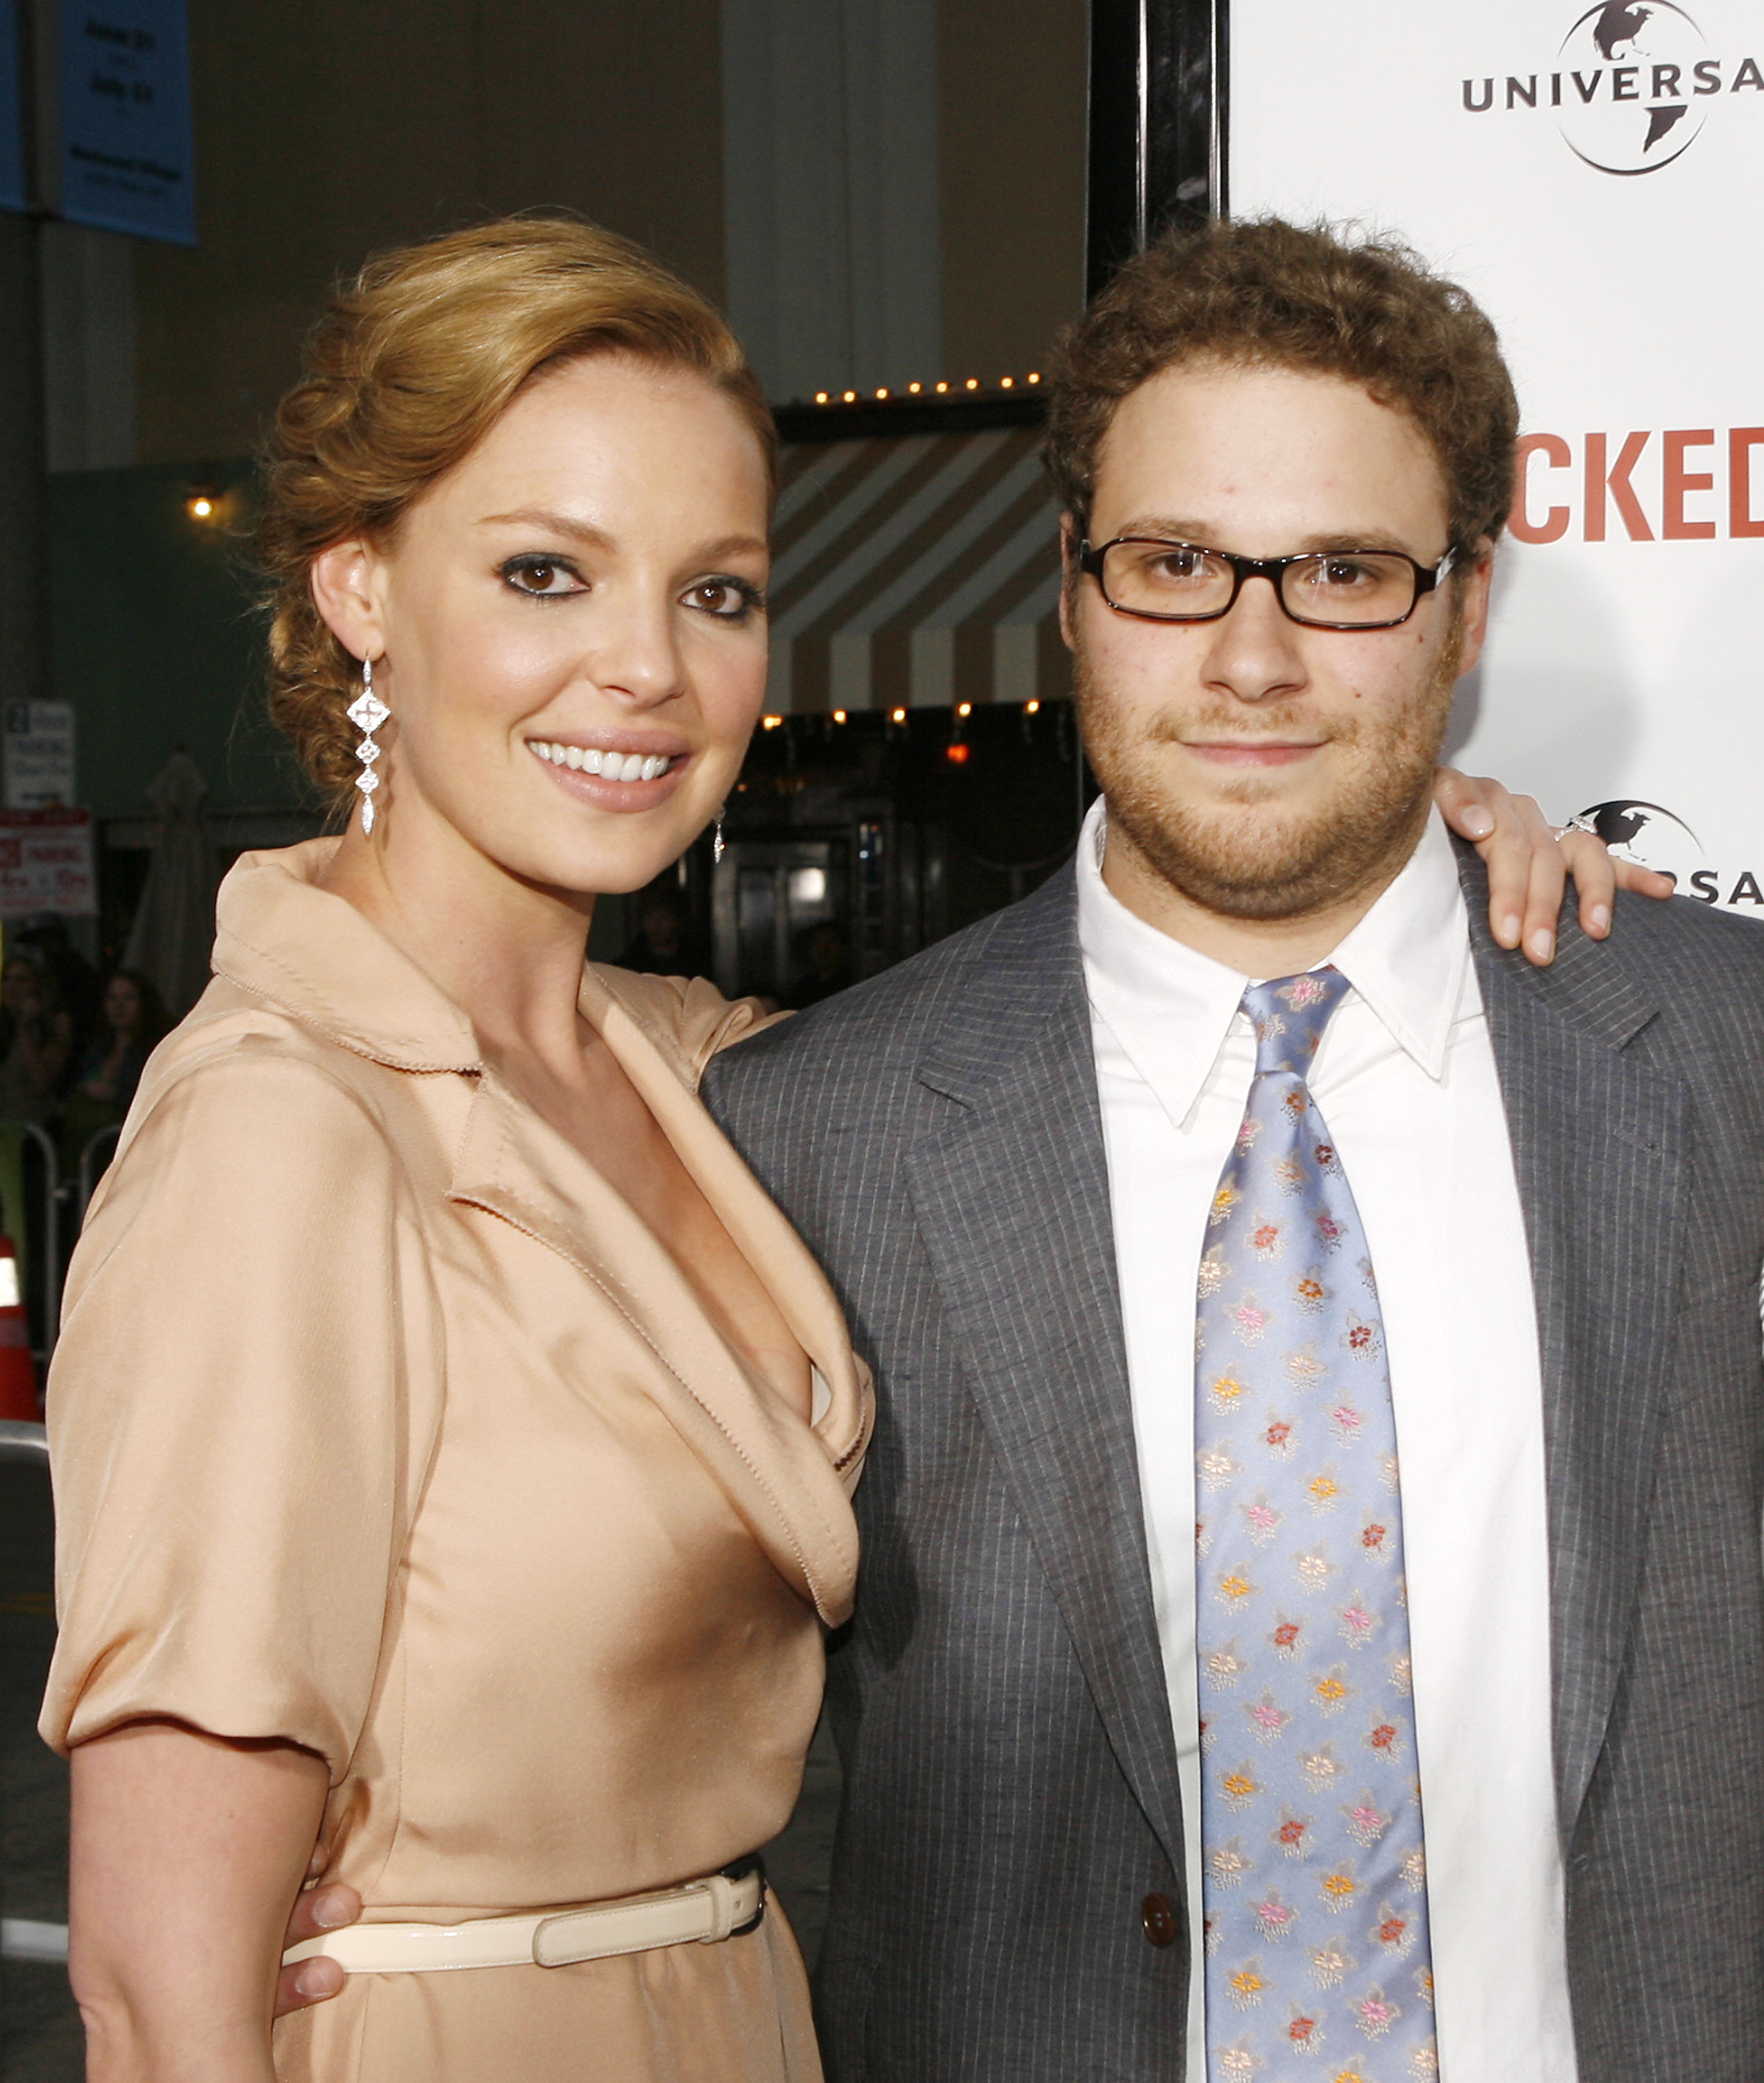 Actress Katherine Heigl and actor/executive producer Seth Rogen pose at the premiere of Universal Pictures' 'Knocked Up' at the Mann's Village Theater on May 21, 2007, in Los Angeles, California. (Getty Images)